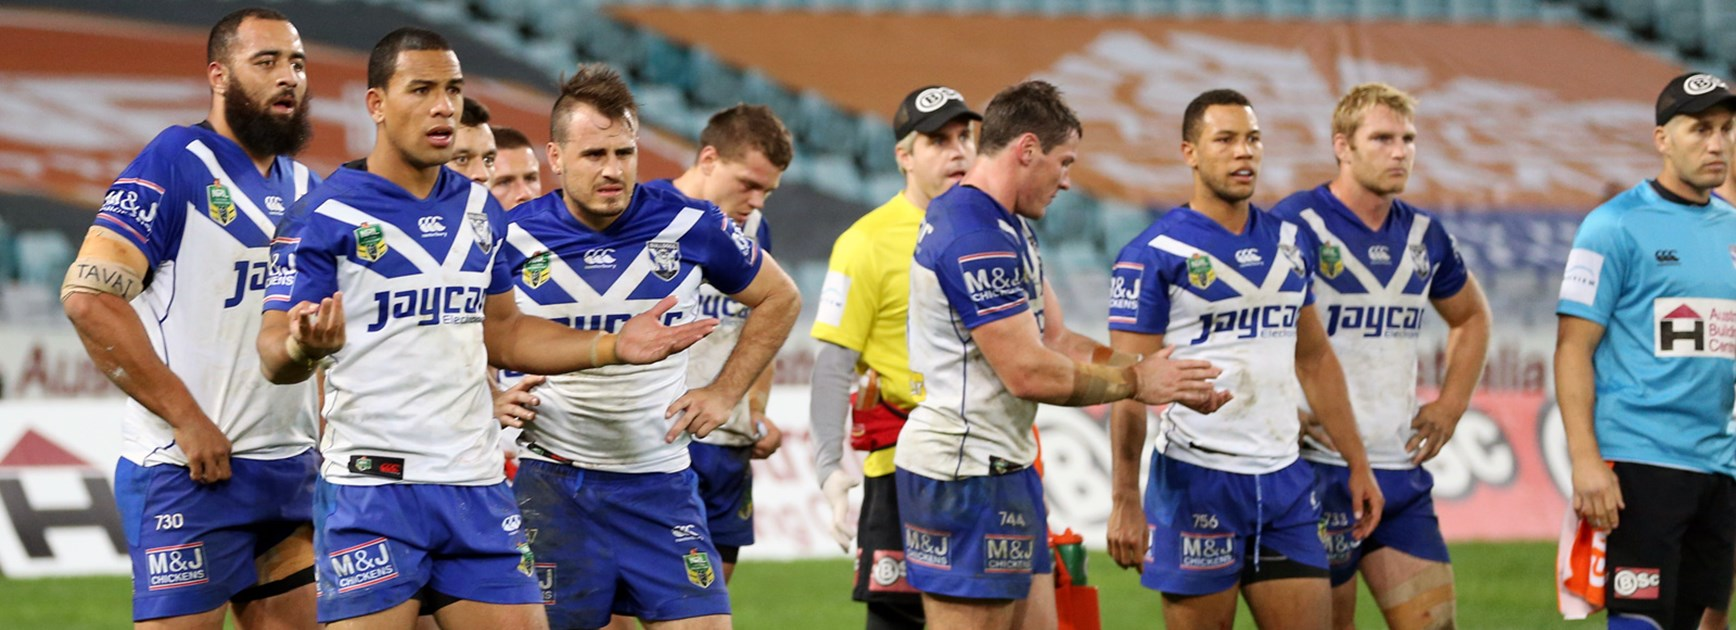 Bulldogs players look on dejected during their Round 13 loss to the Sharks.